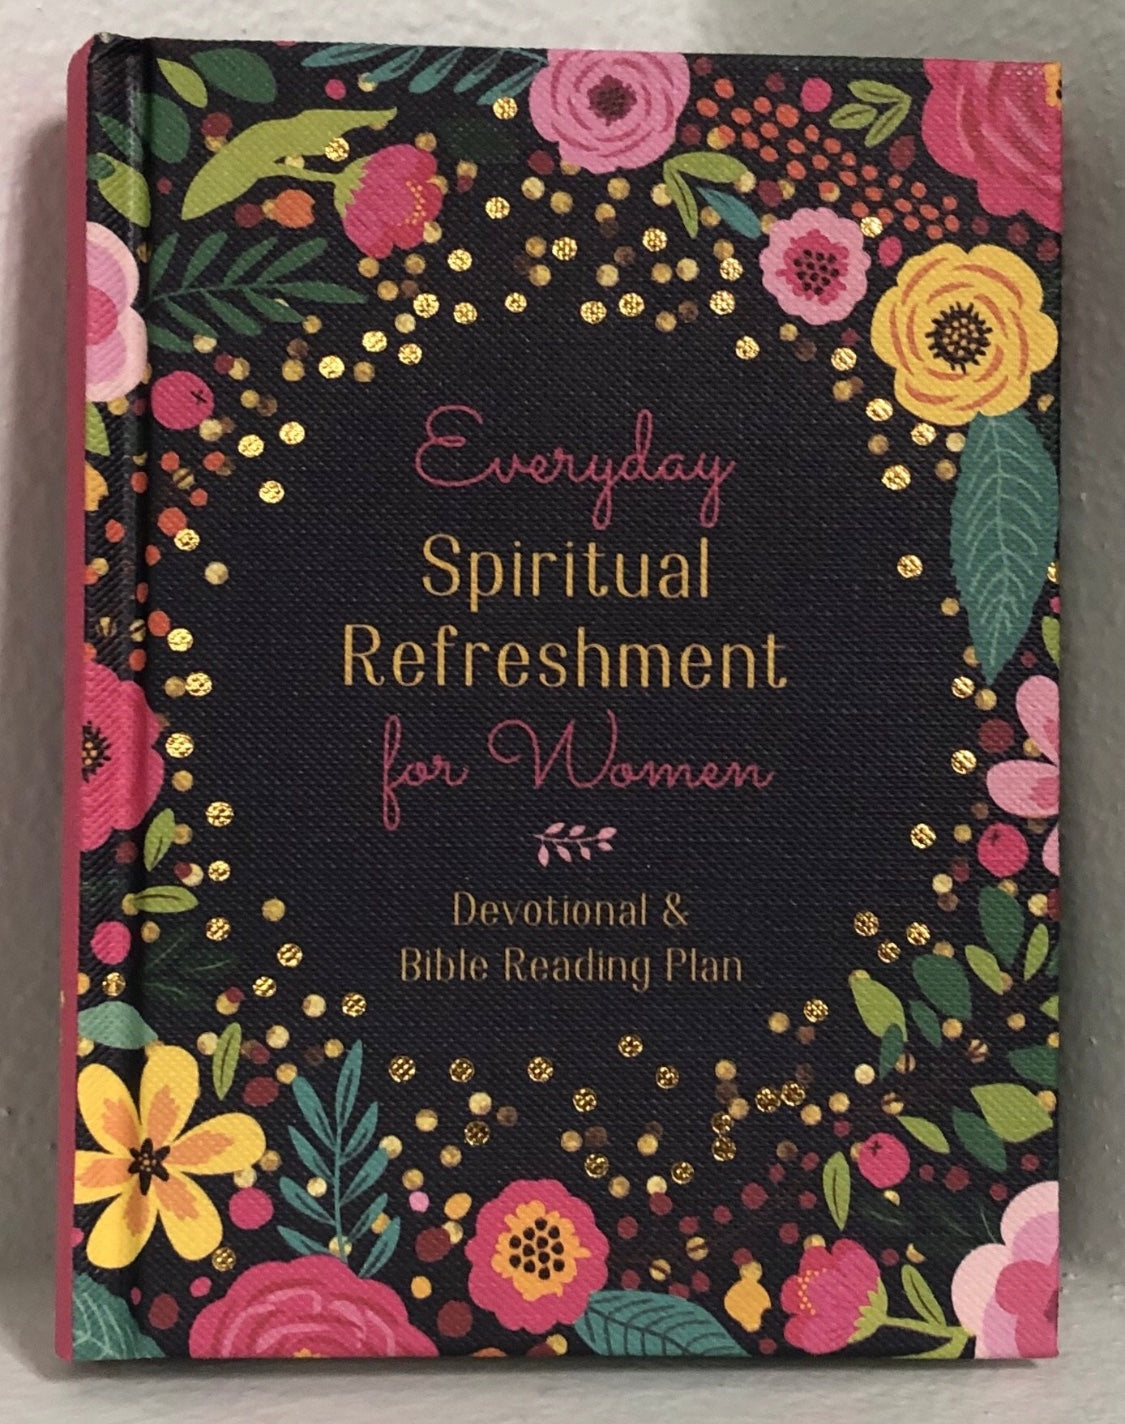 Everyday Spiritual Refreshment for Women